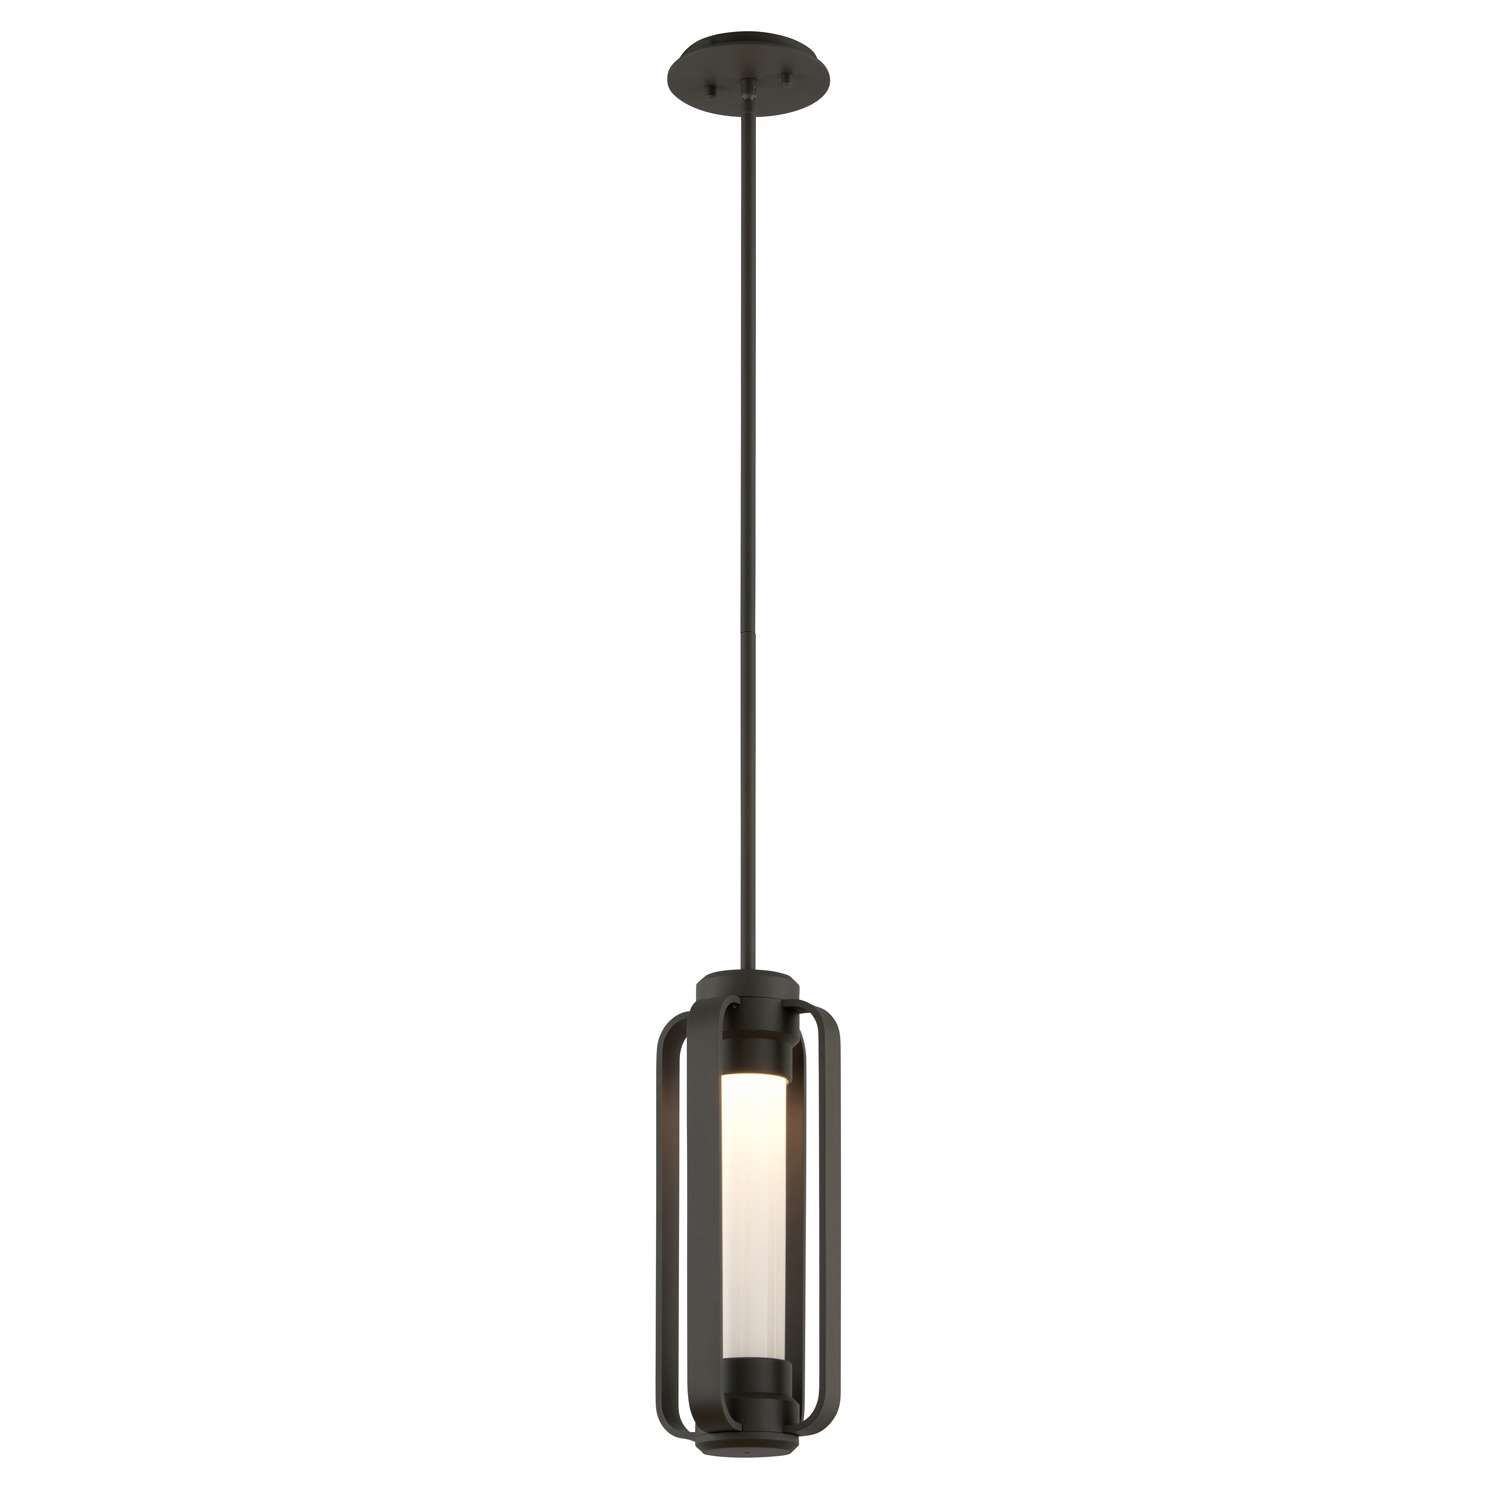 Verve Outdoor Pendant Features Bronze Finish Housing An Opal Glass Diffuser One 12 Watt 120 Outdoor Hanging Lights Outdoor Pendant Lighting Outdoor Pendant